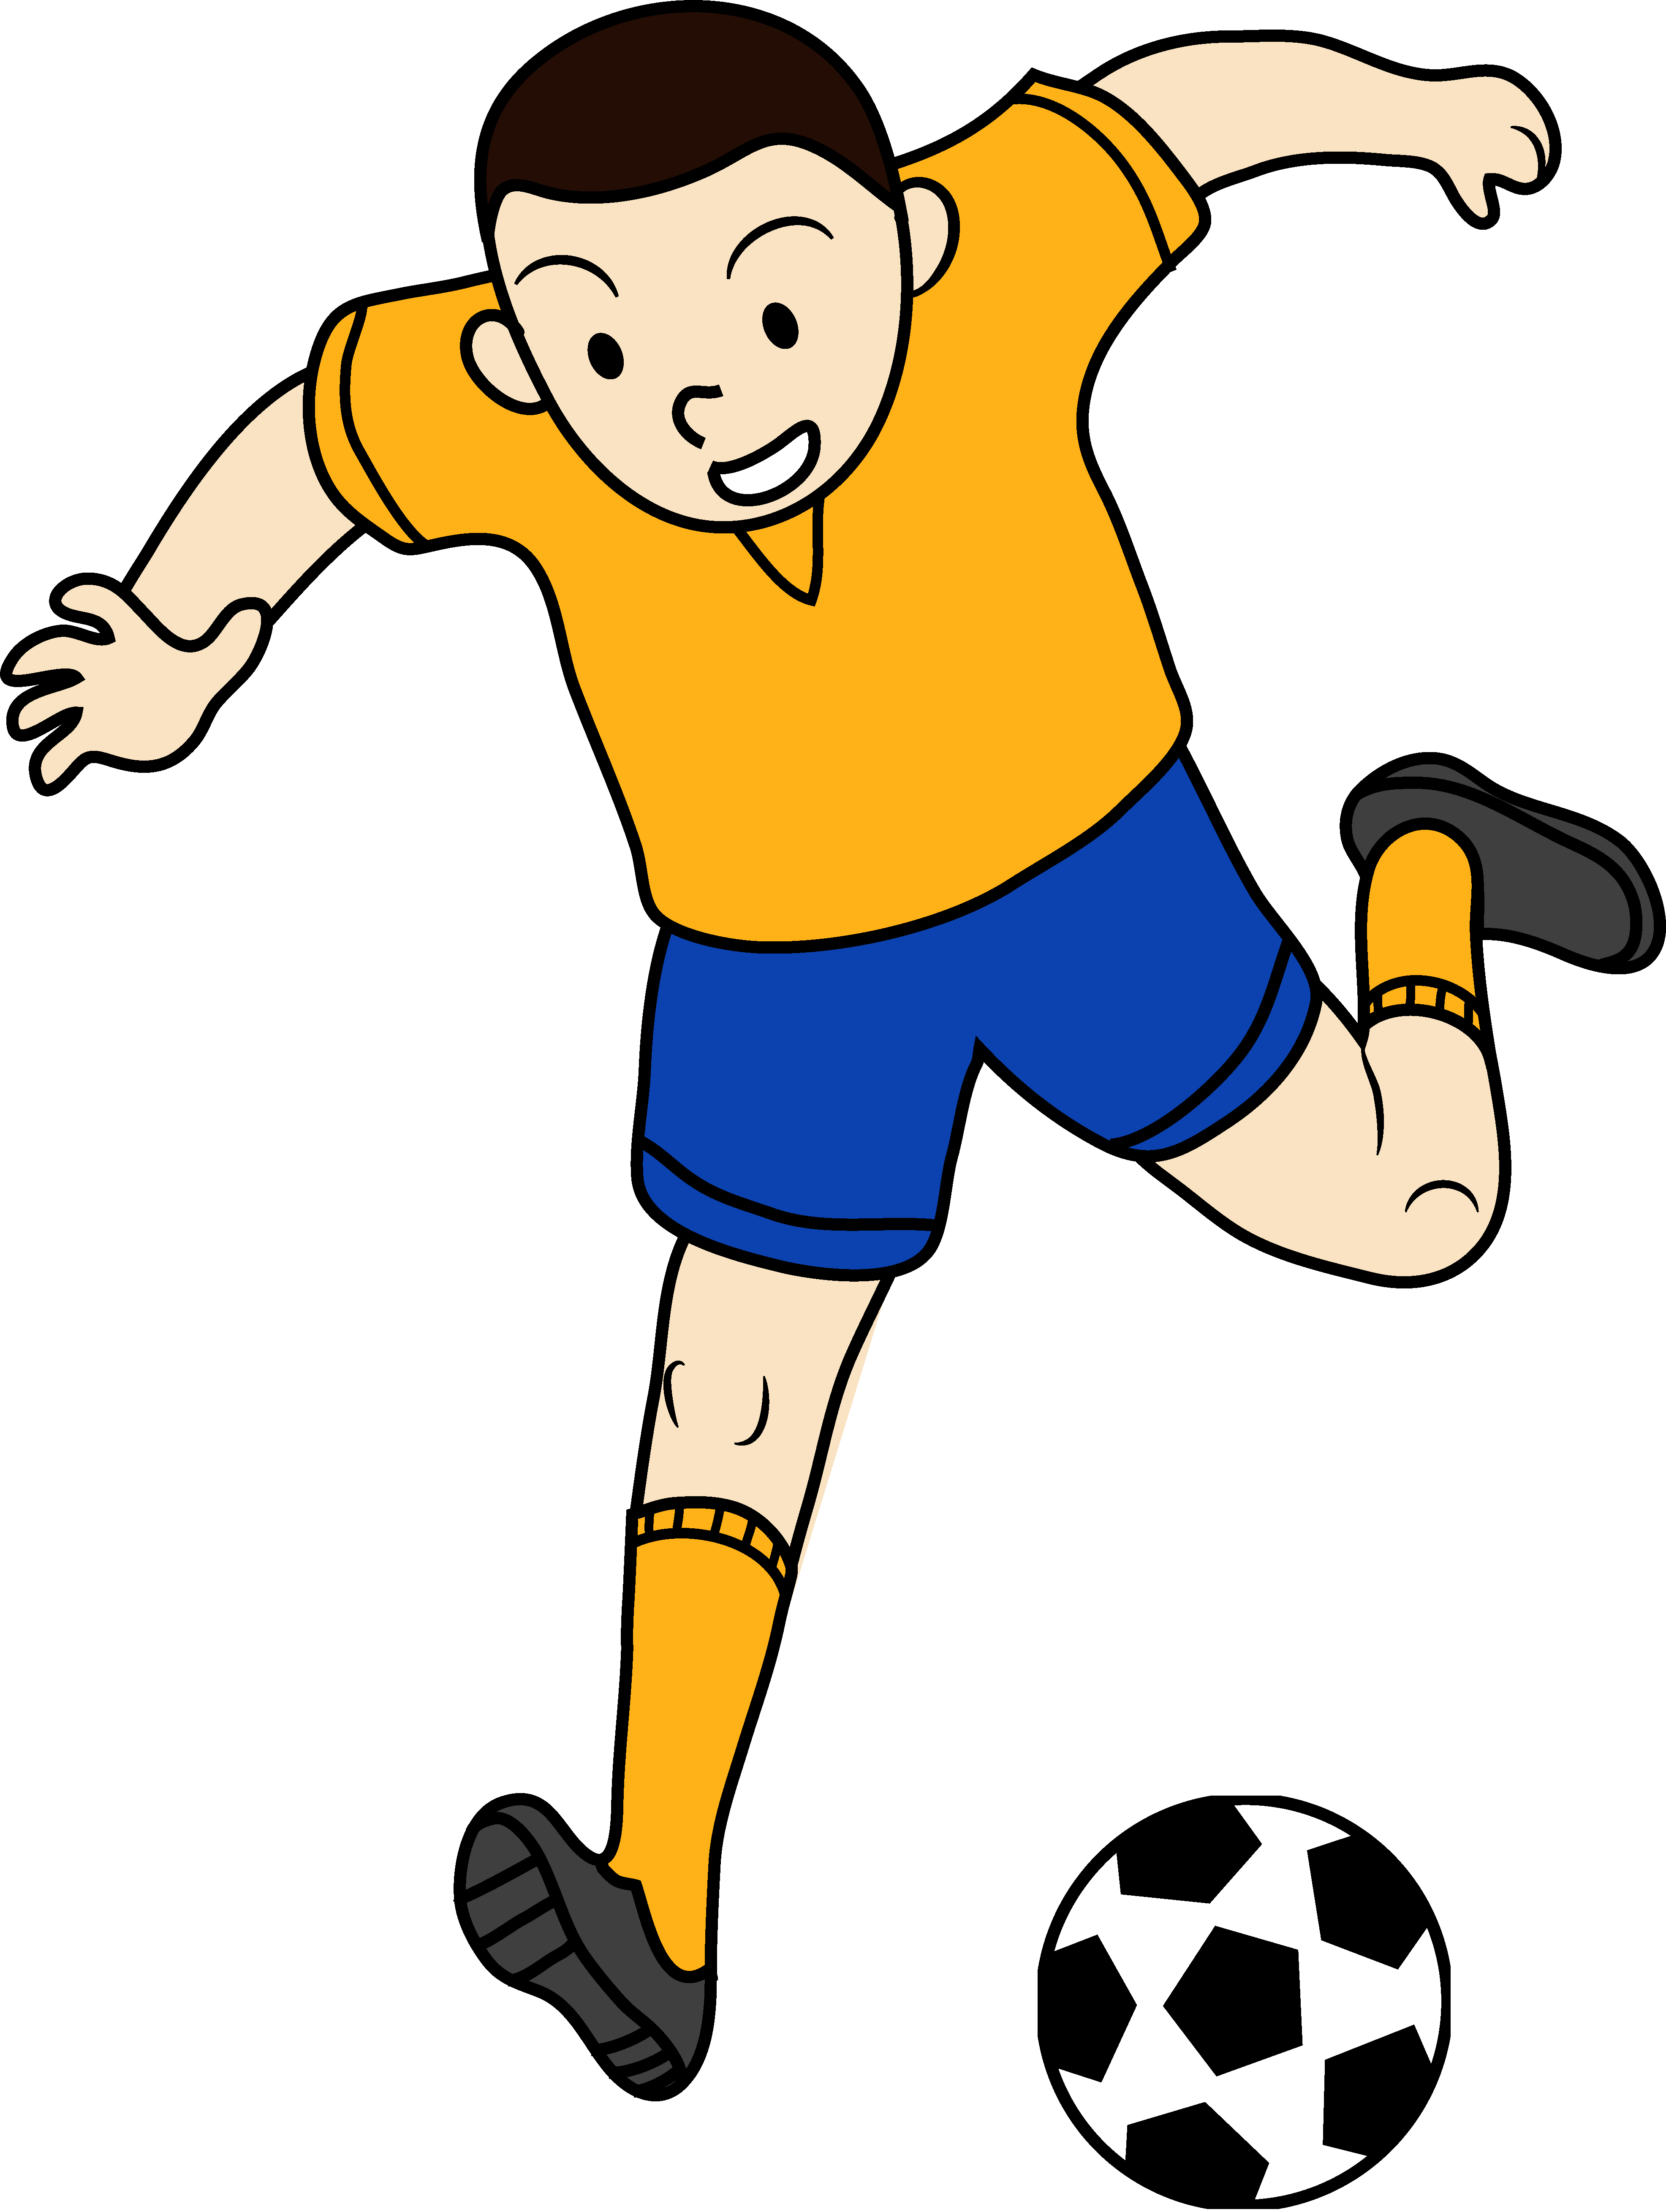 Playing football . Darts clipart player image library library